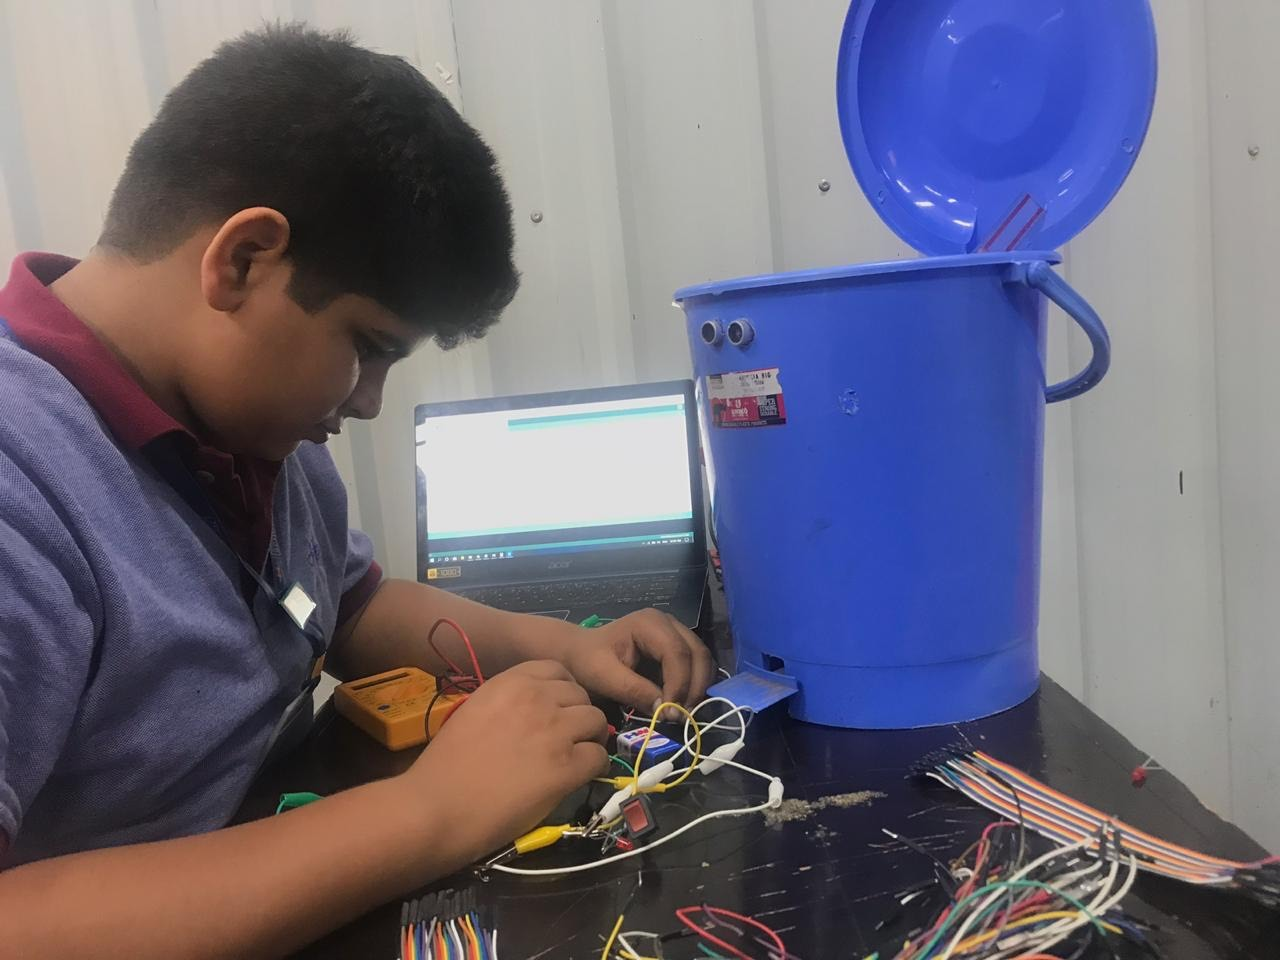 Krish, a student from MRIS Ludhiana has developed a Smart Bin for the physically challenged